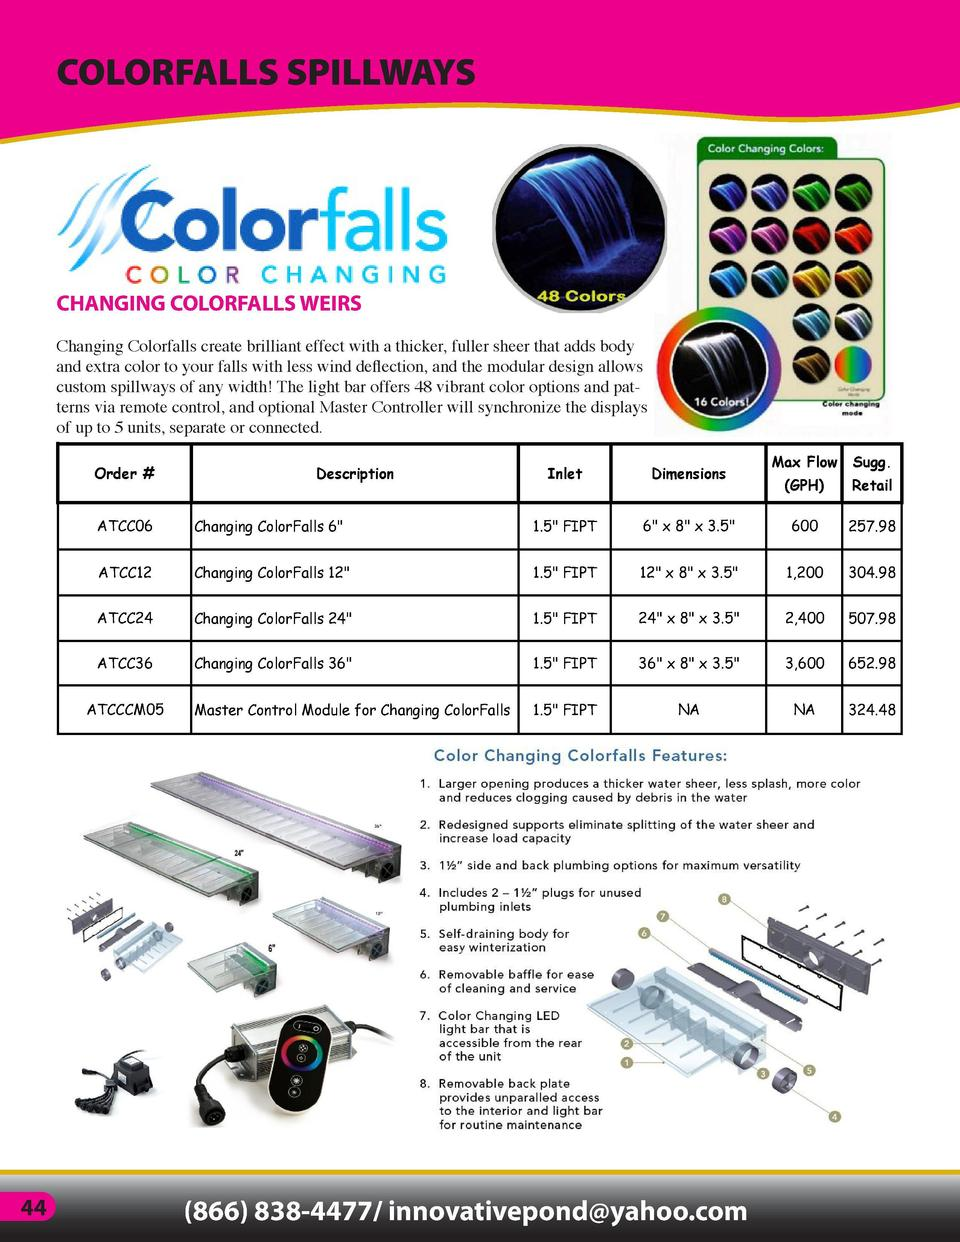 COLORFALLS SPILLWAYS  CLASSIC COLORFALLS  CHANGING COLORFALLS WEIRS  Classic Colorfalls are a perfect fit for formal retai...